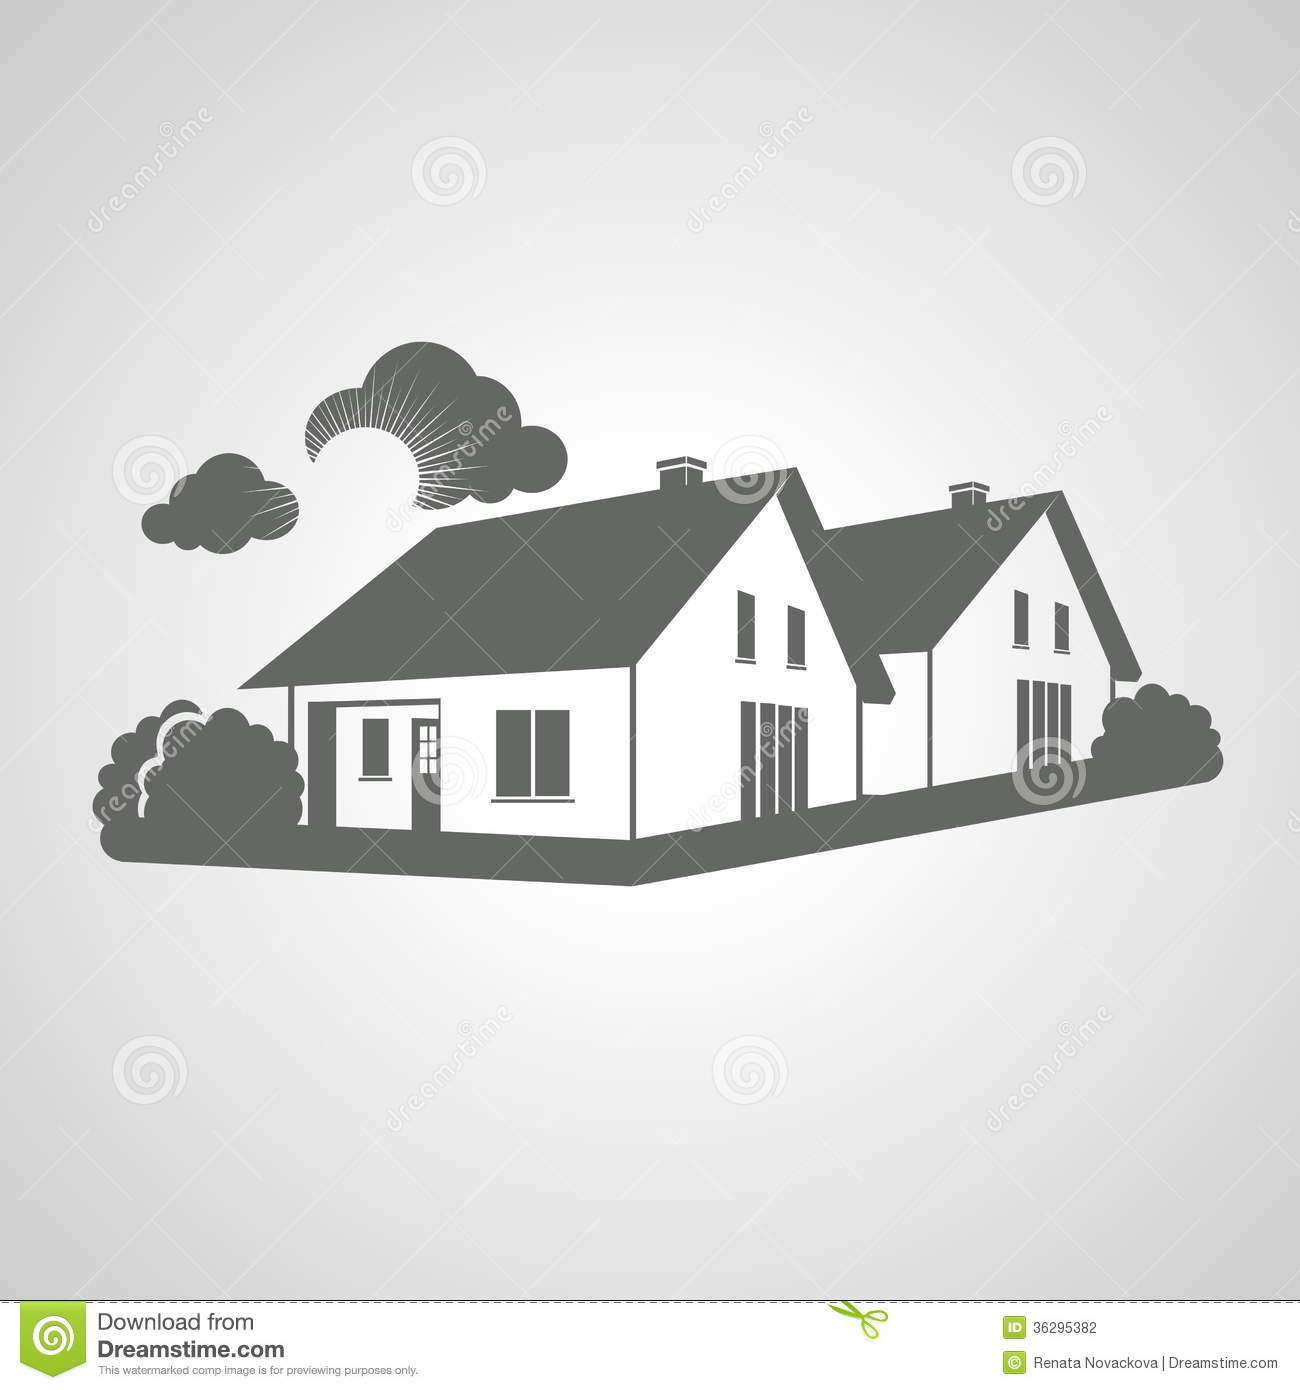 Symbol of home group of houses icon realty silhouette sign of real estate